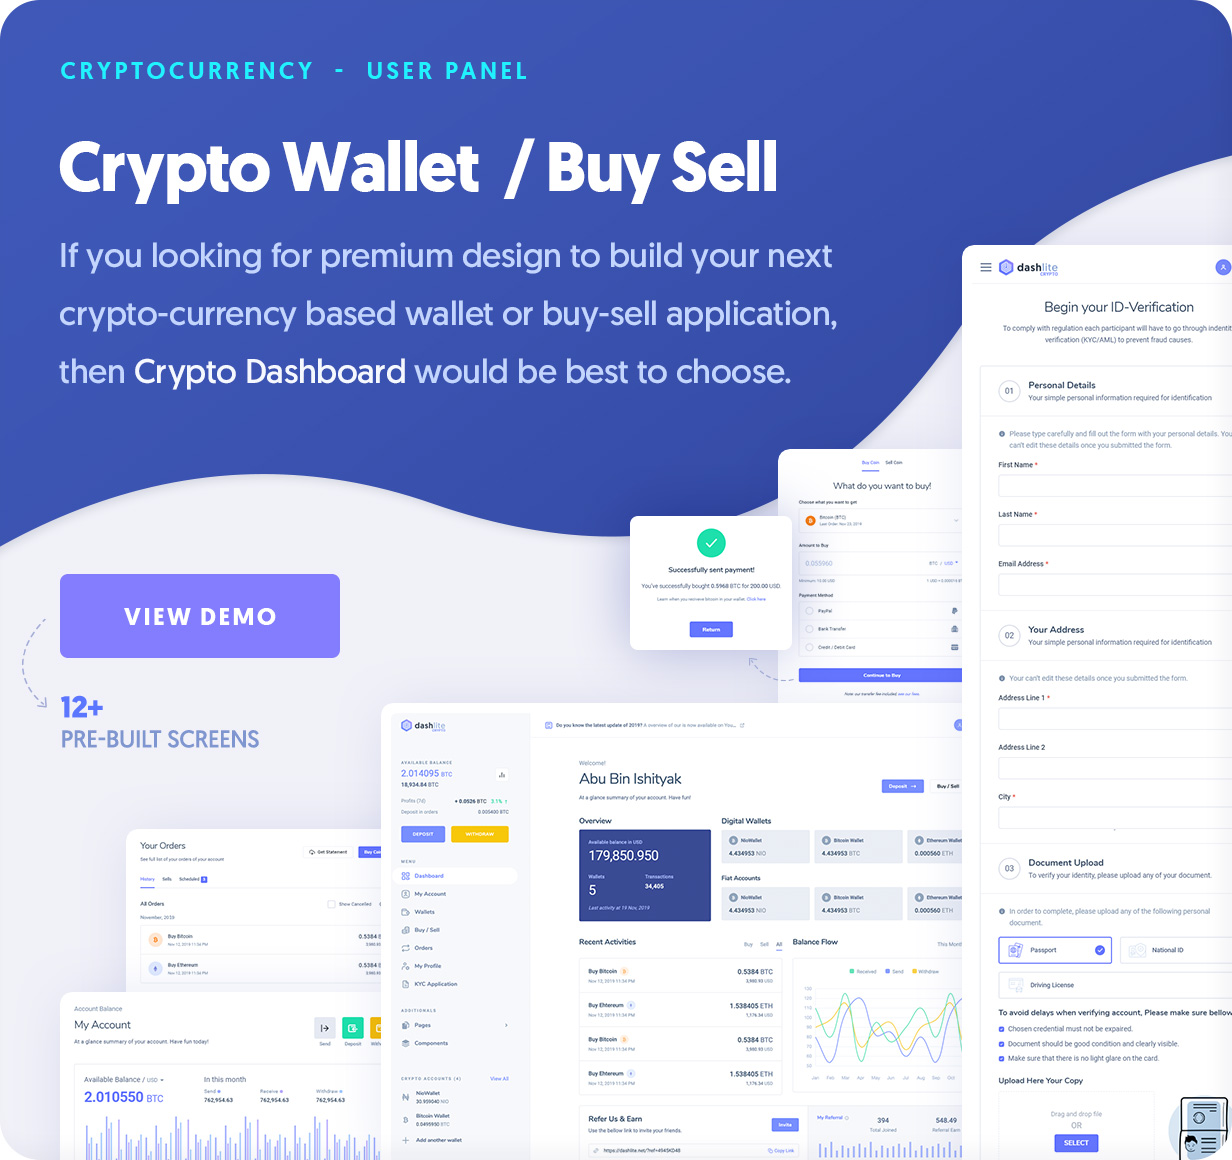 DashLite - Cryptocurrency, Crypto Buy Sell, Wallet Dashboard Template